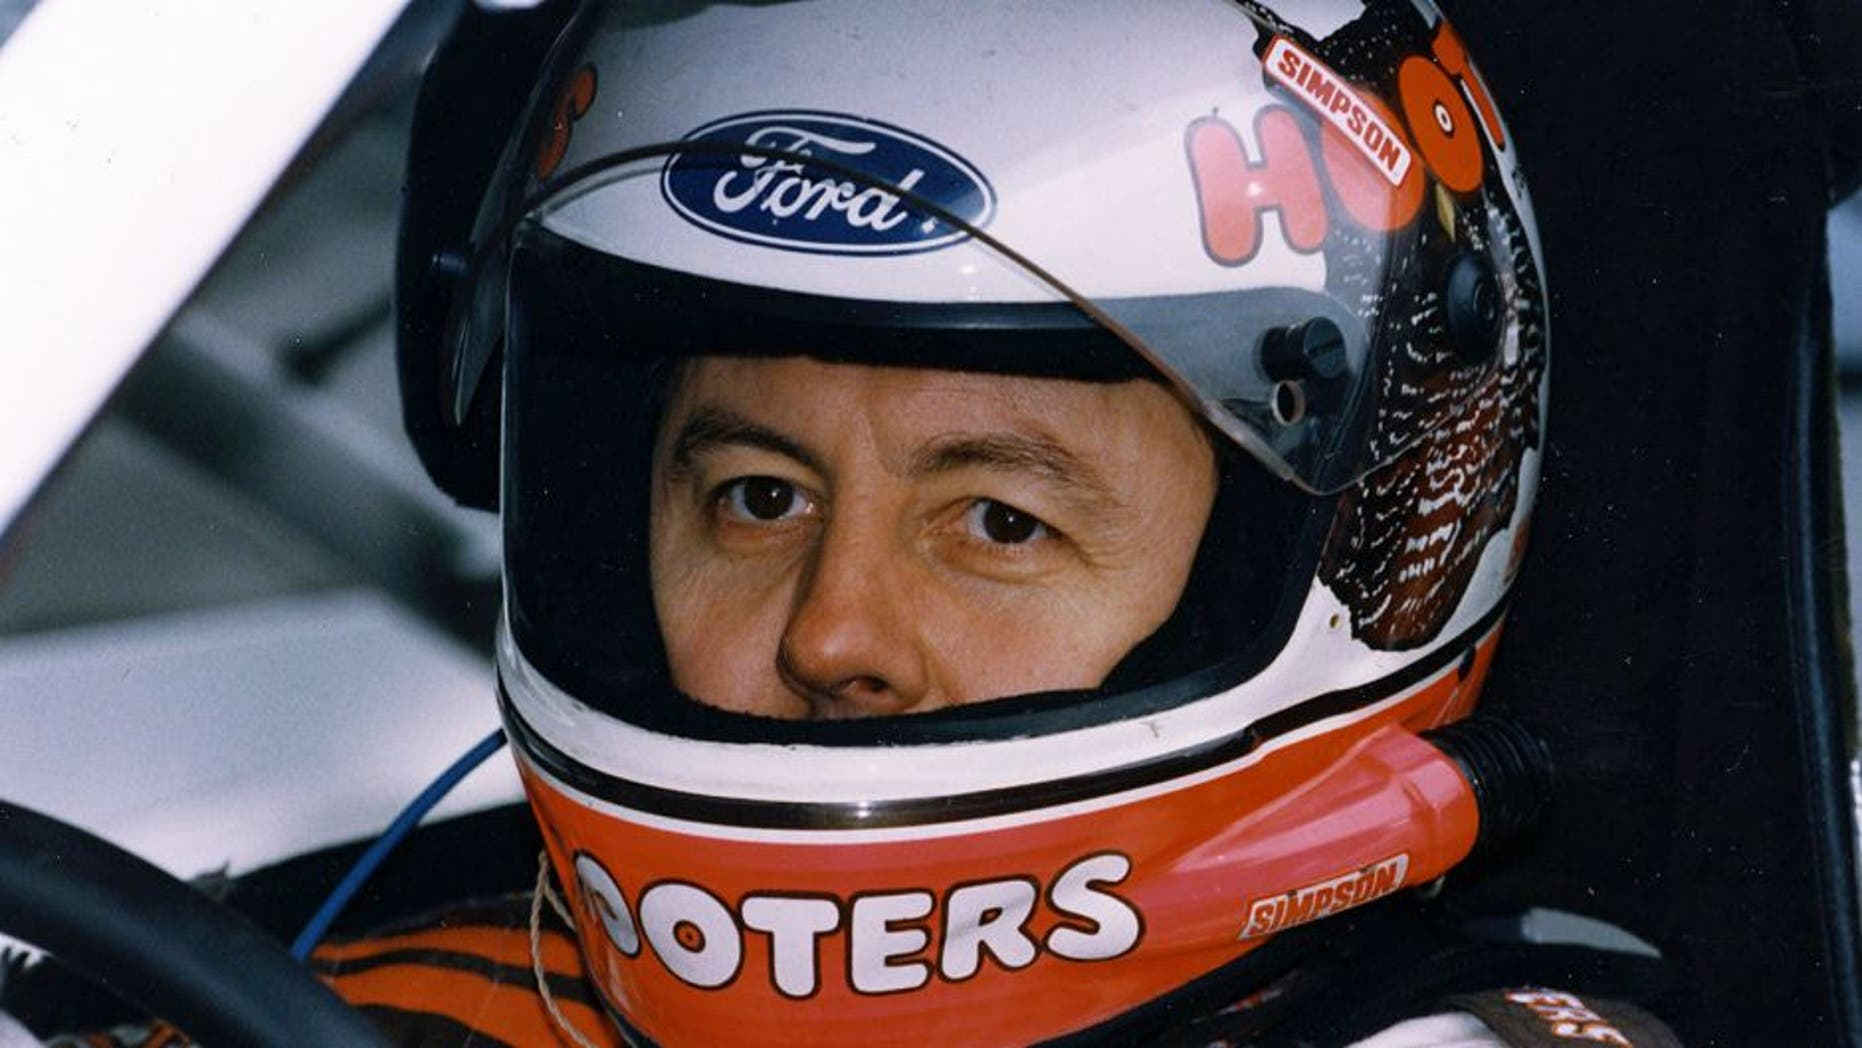 RICHMOND, VA ? 1992: Alan Kulwicki gets prepared for the start of a NASCAR Cup race at Richmond International Raceway. Kulwicki went on to claim the season Cup championship behind the wheel of his own Hooters-sponsored Ford Thunderbirds. (Photo by ISC Images & Archives via Getty Images)